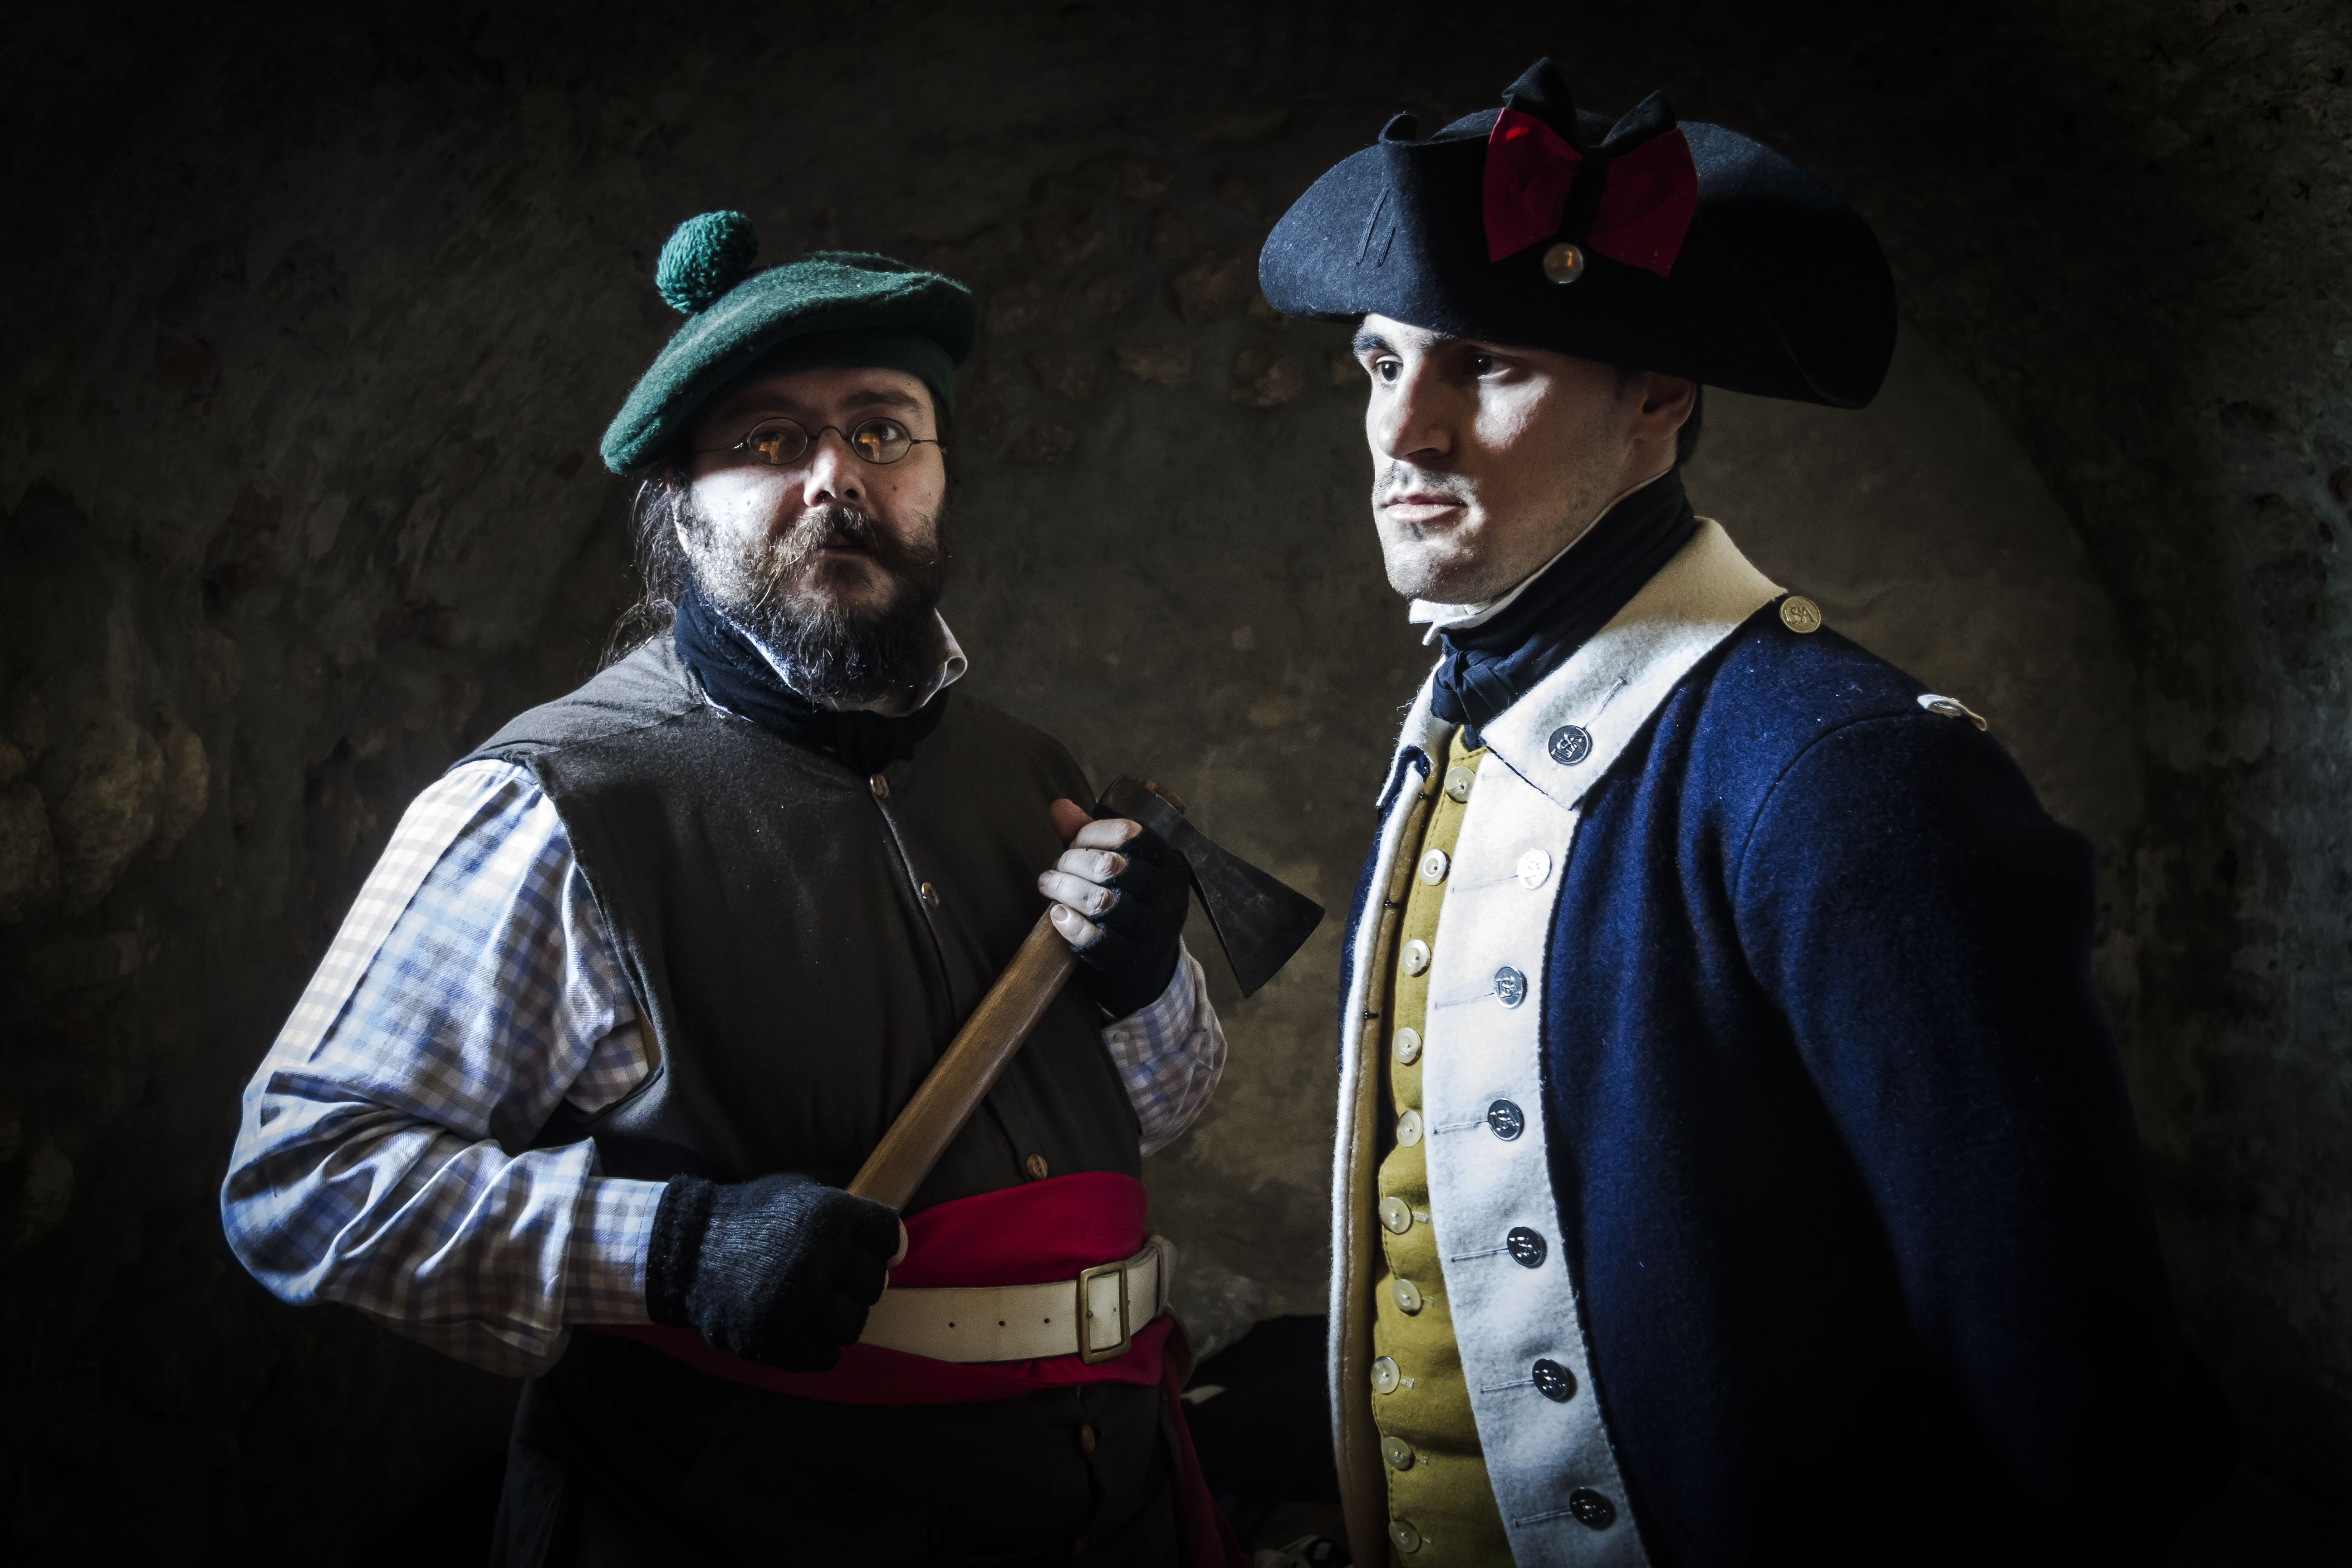 Two sergeants of 4th Massachusetts Regiment, one wearing wool cap and holding ax, and other wearing tricorn hat and blue uniform, American Revolutionary War, 18th century, Historical reenactment